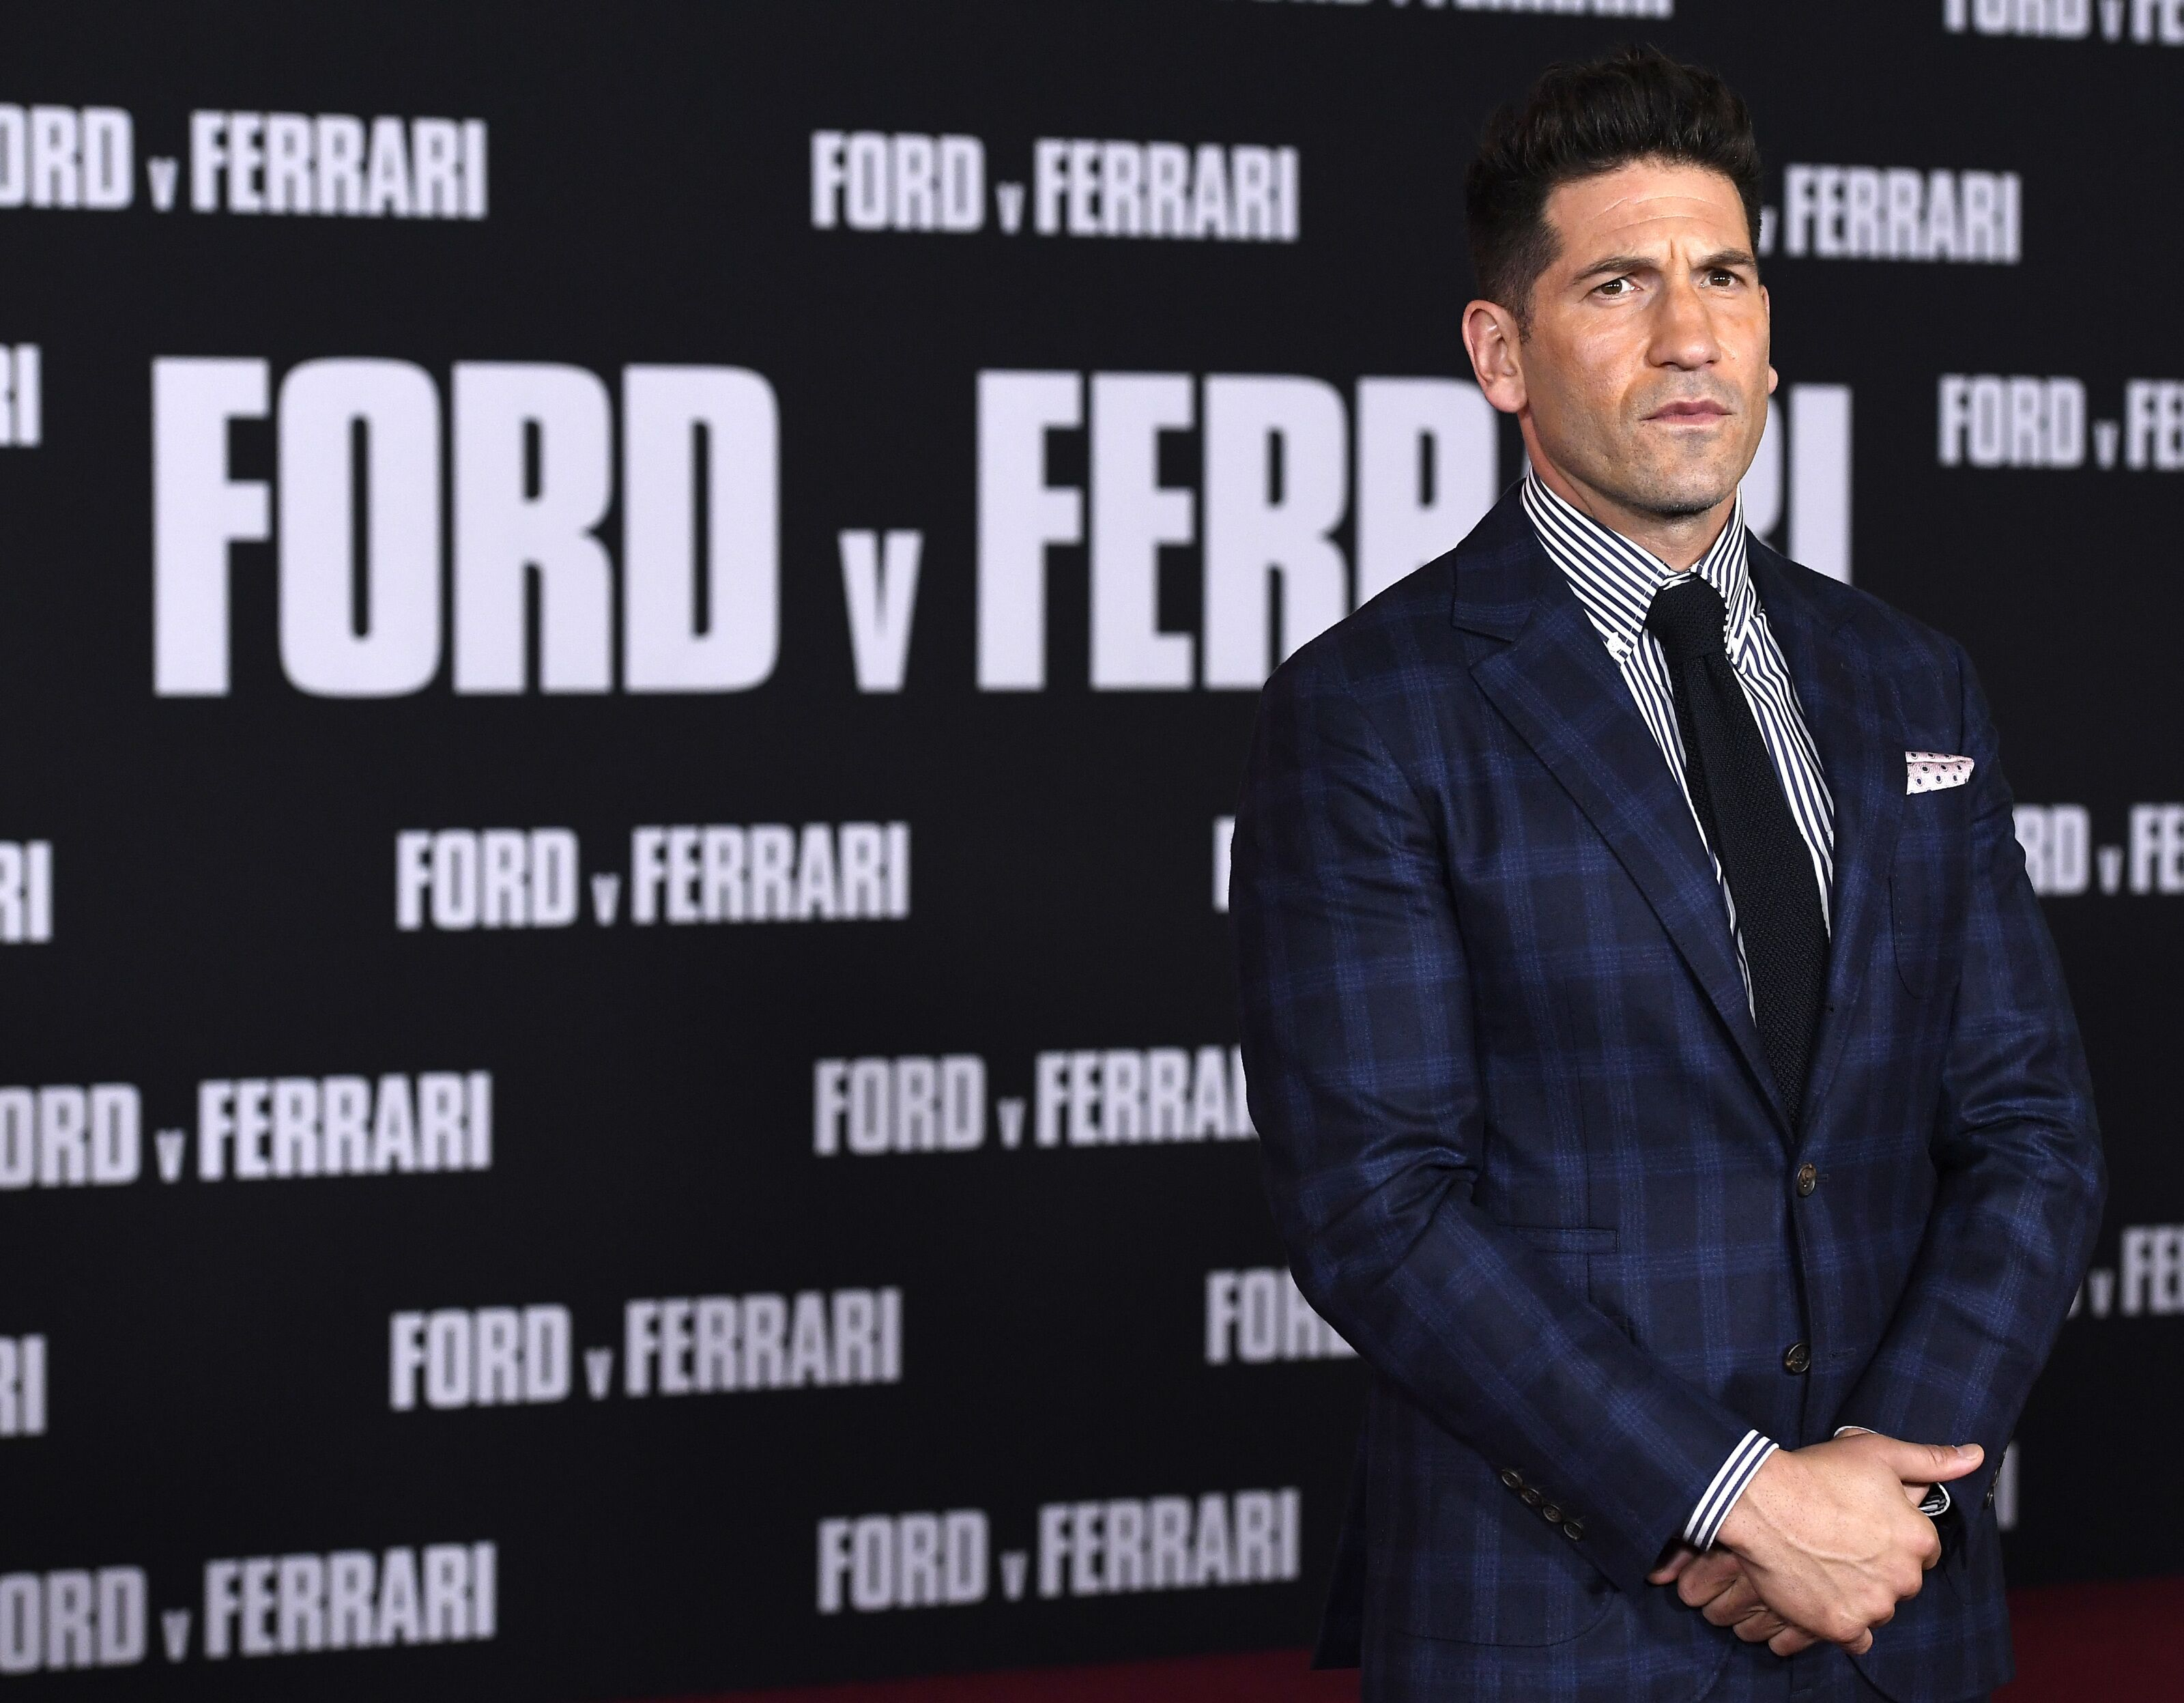 Jon Bernthal's newest project is portraying Lee Iococca